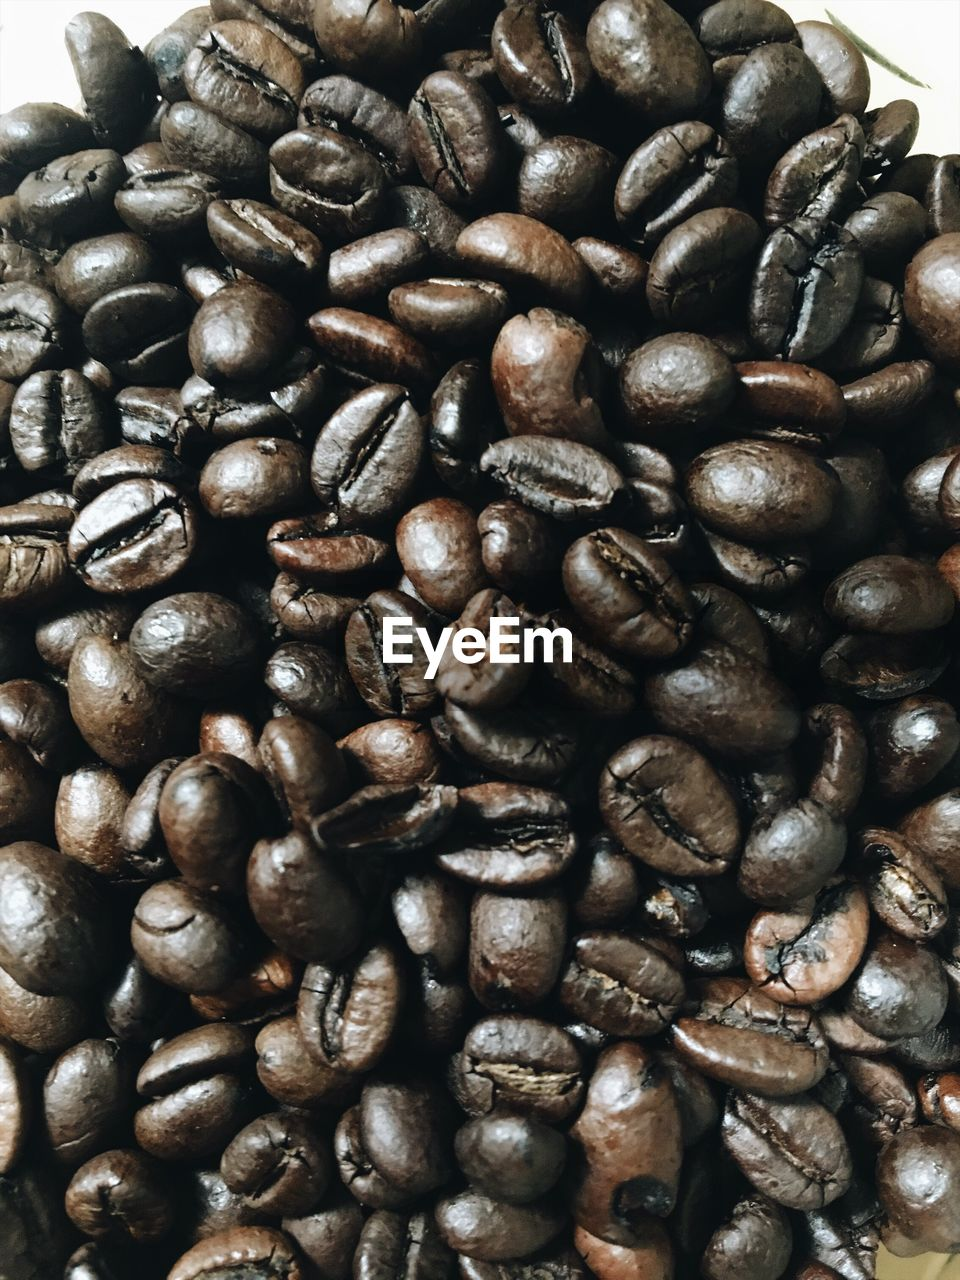 roasted coffee bean, food and drink, coffee bean, freshness, food, coffee - drink, raw coffee bean, abundance, brown, no people, roasted, indoors, close-up